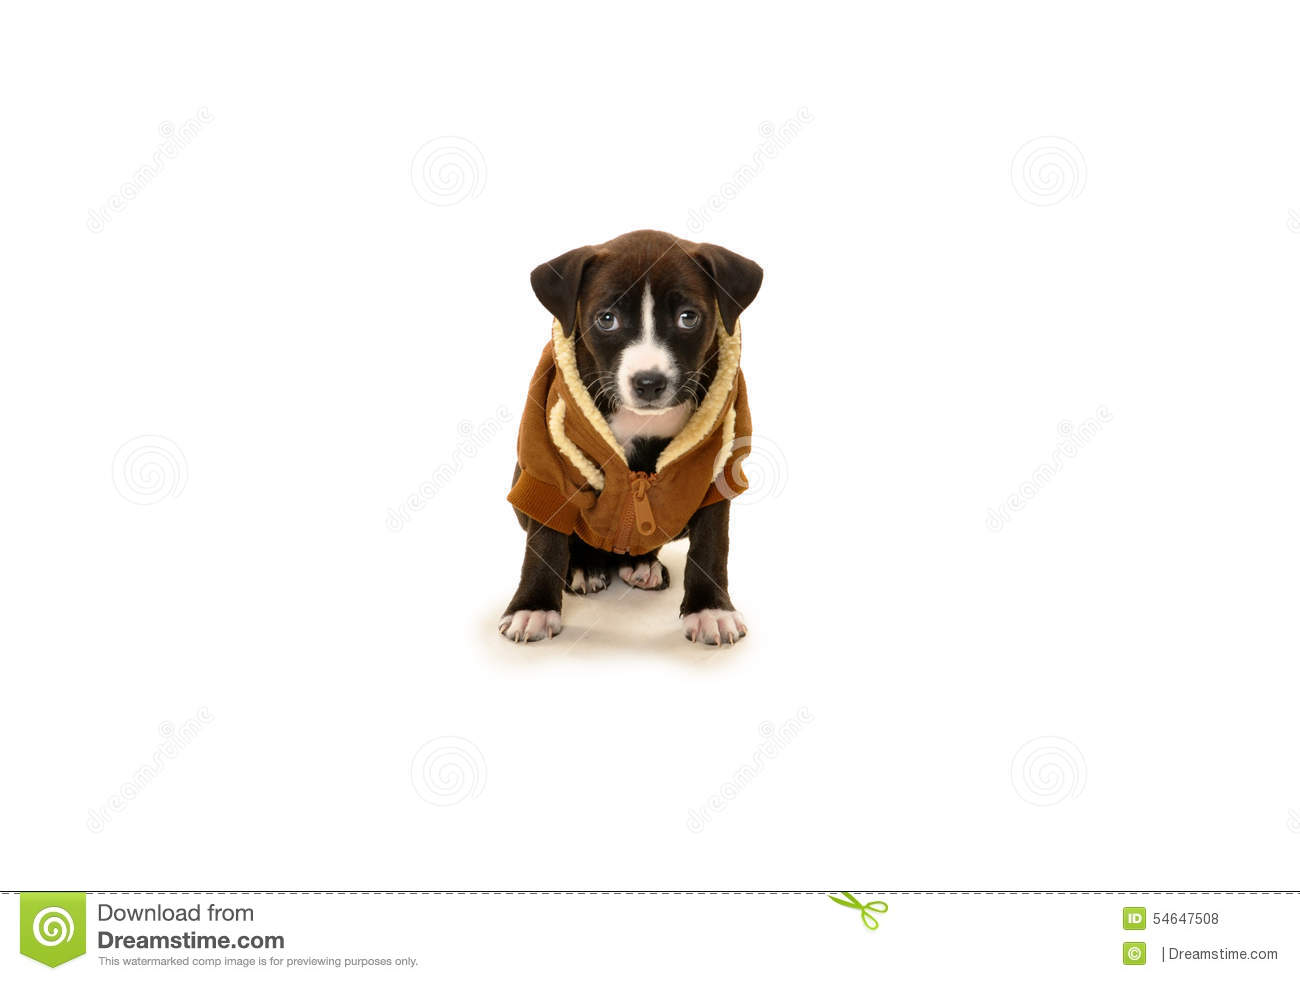 Pure bred pit bull puppy in jacket looking straight at audience